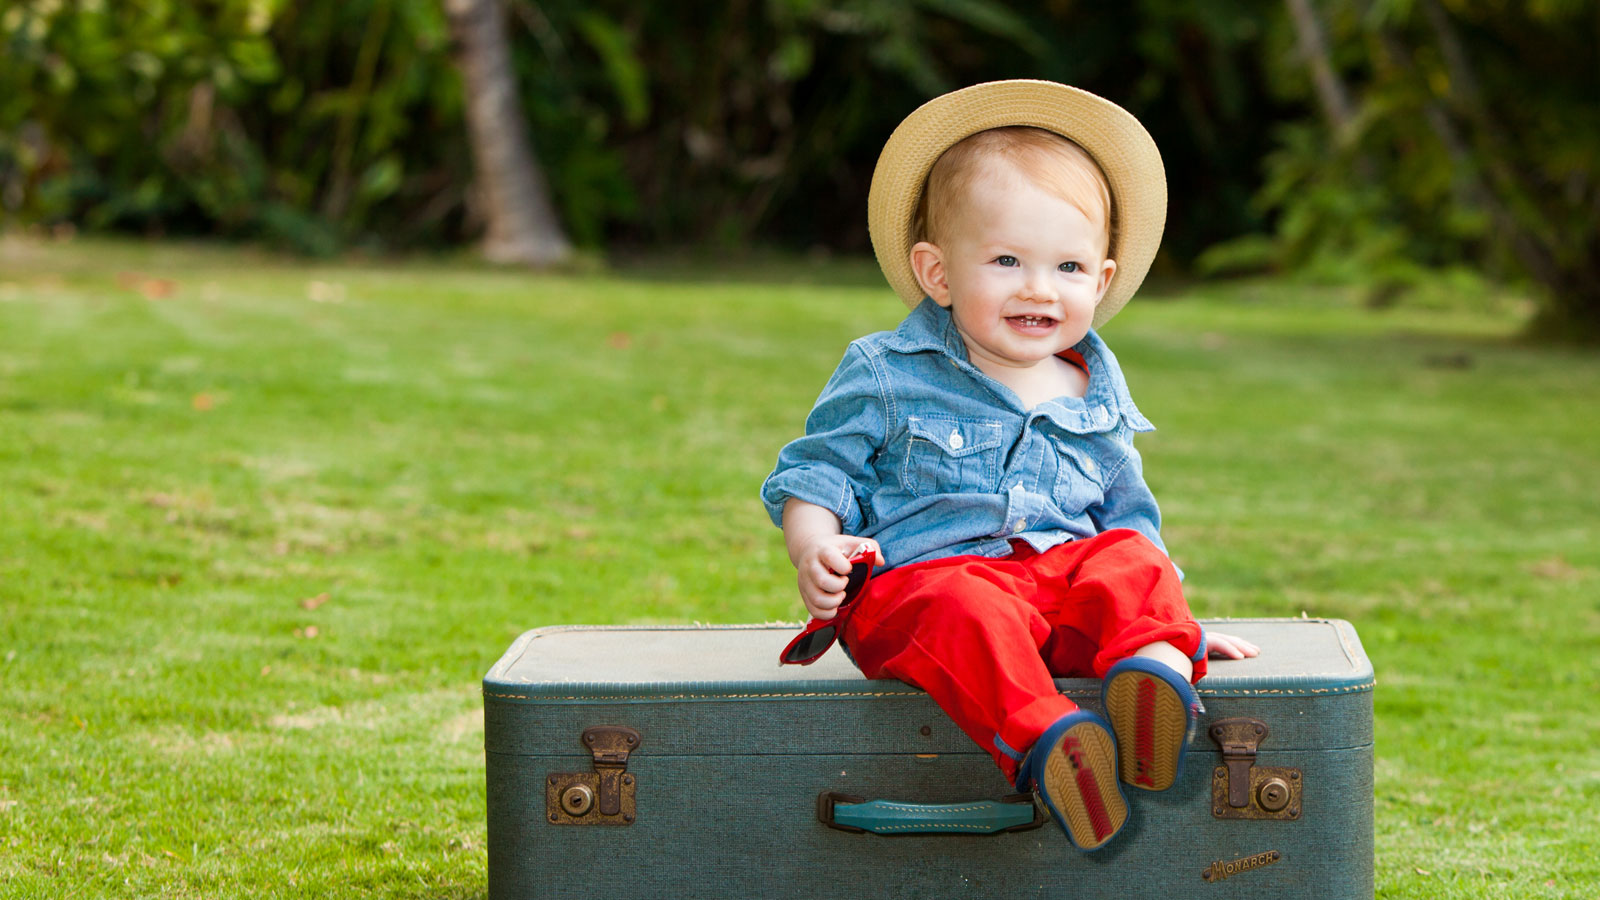 International Baby of Mystery - That Poore Baby - The Dad Blog for Fathers who Parent!